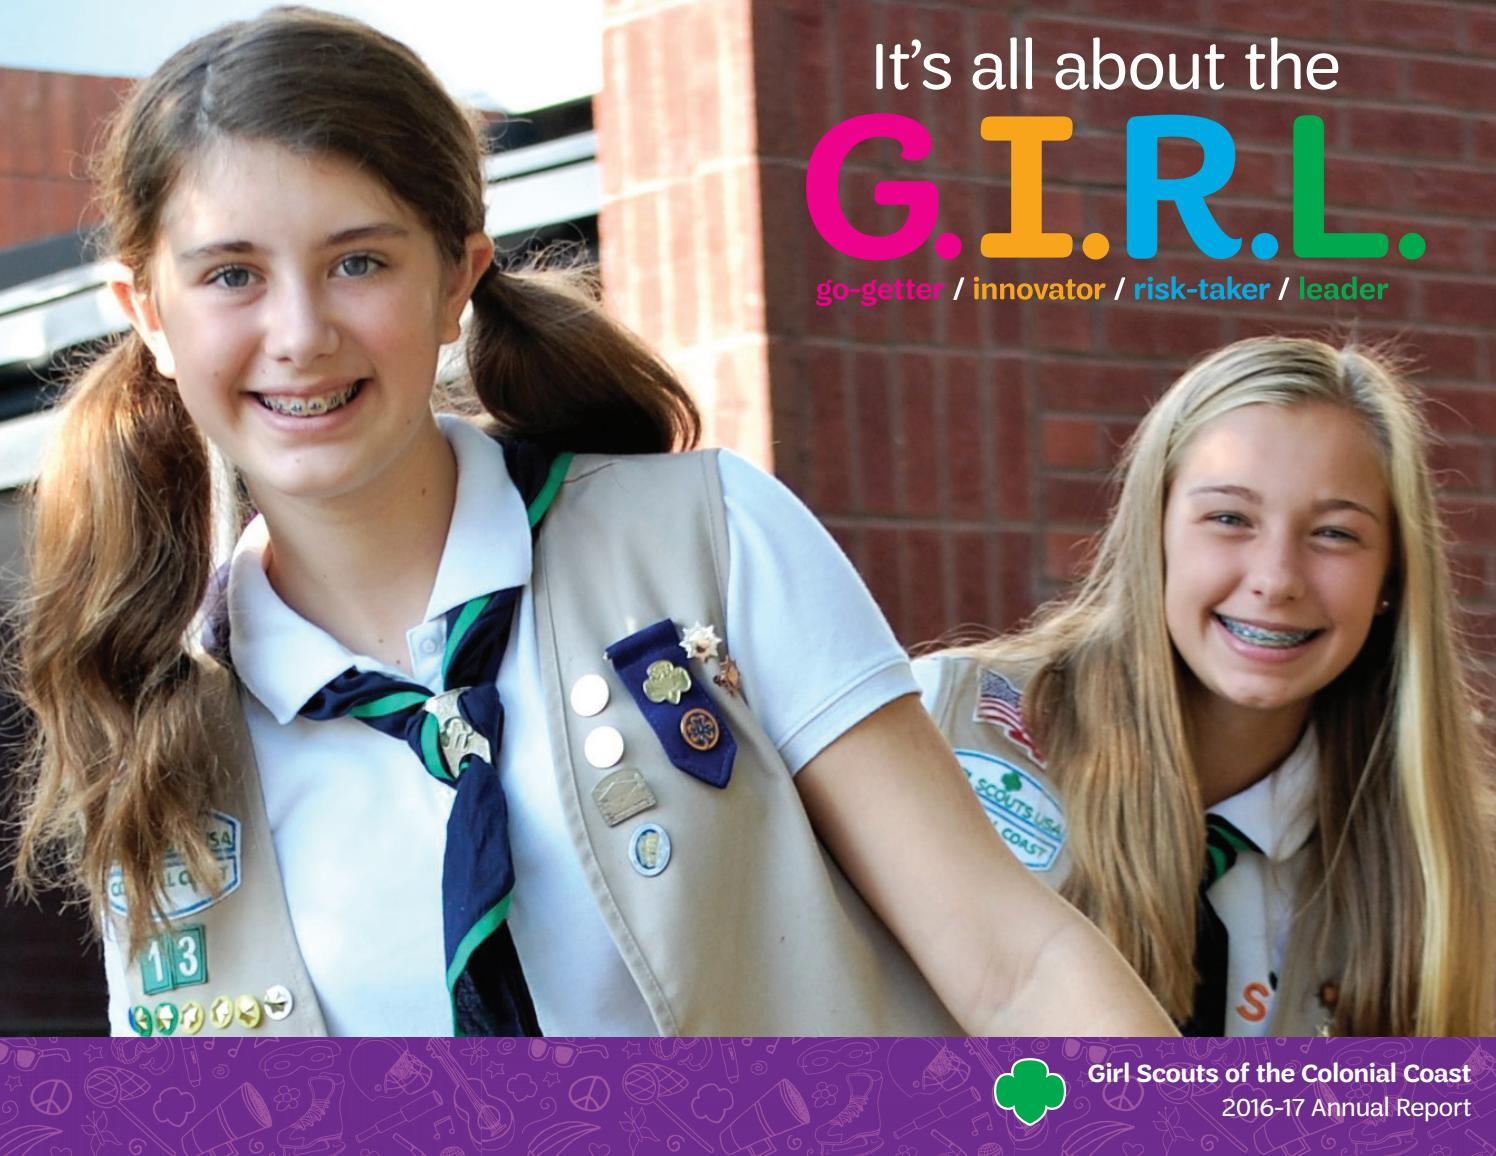 2016 17 annual report website by Girl Scouts of the Colonial